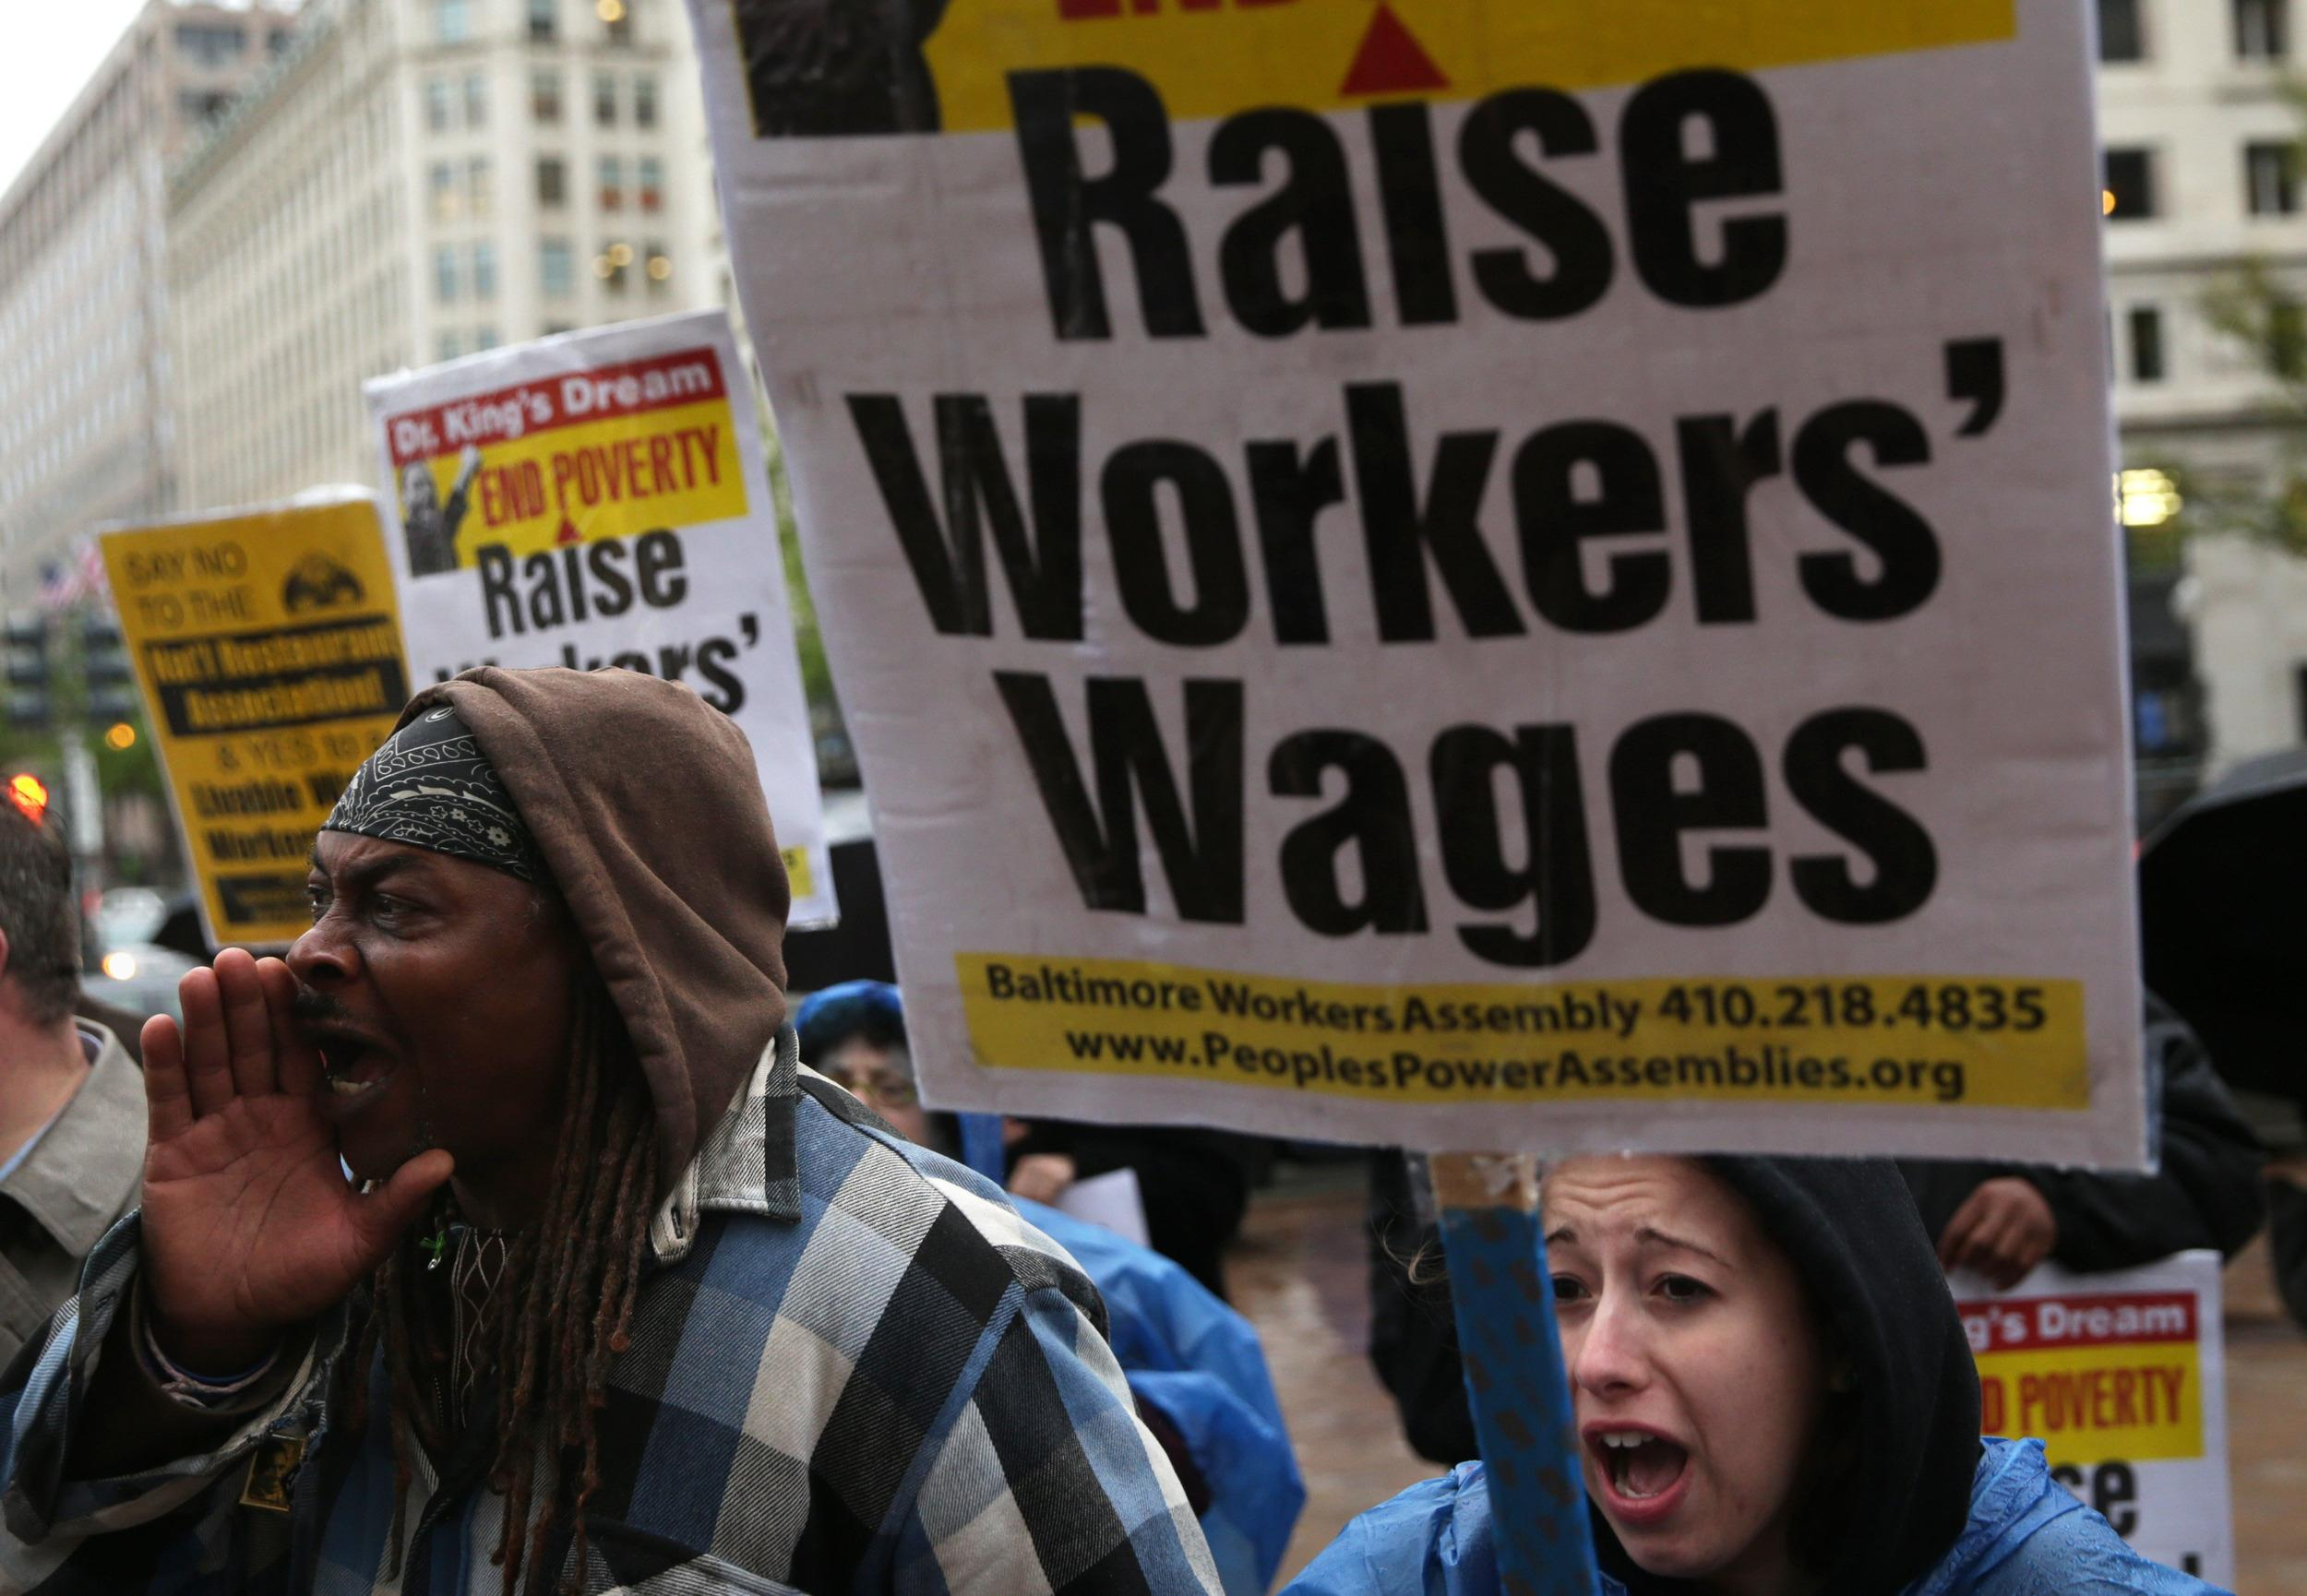 Image: Activists Hold Protest In Favor Of Raising Minimum Wage